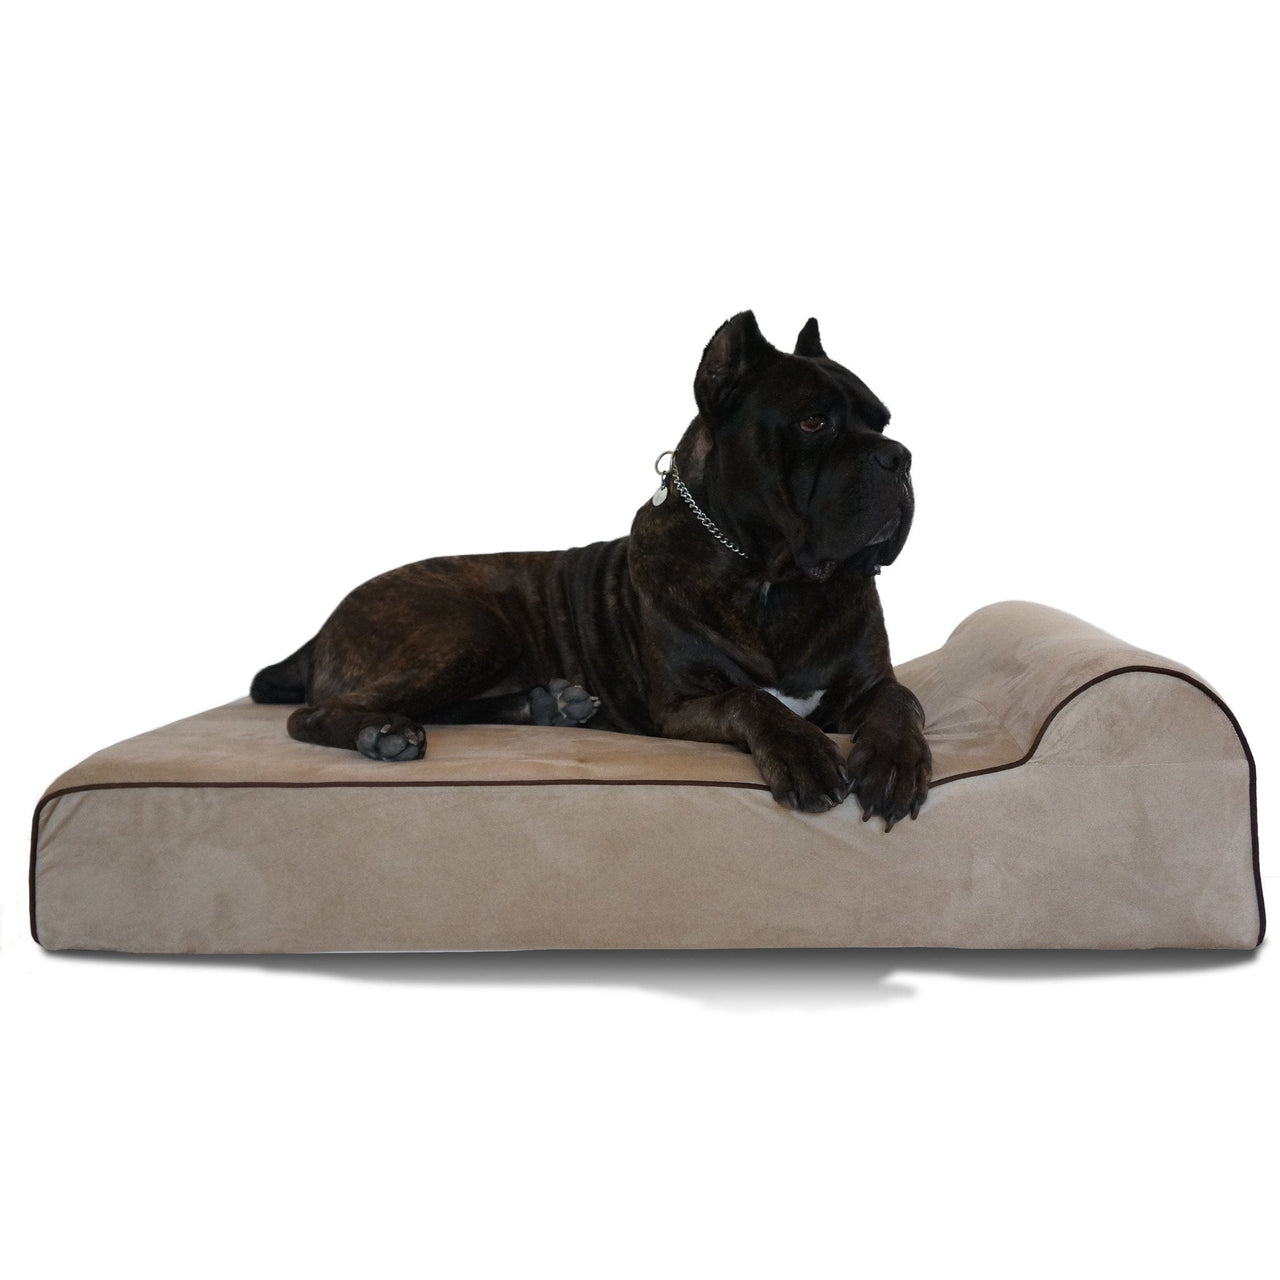 "Bully Bed Orthopedic, Washable & Waterproof Big Dog Beds Bully Bed bullybeds.com Large $179.99 - 48""x30""x7"" Tan"